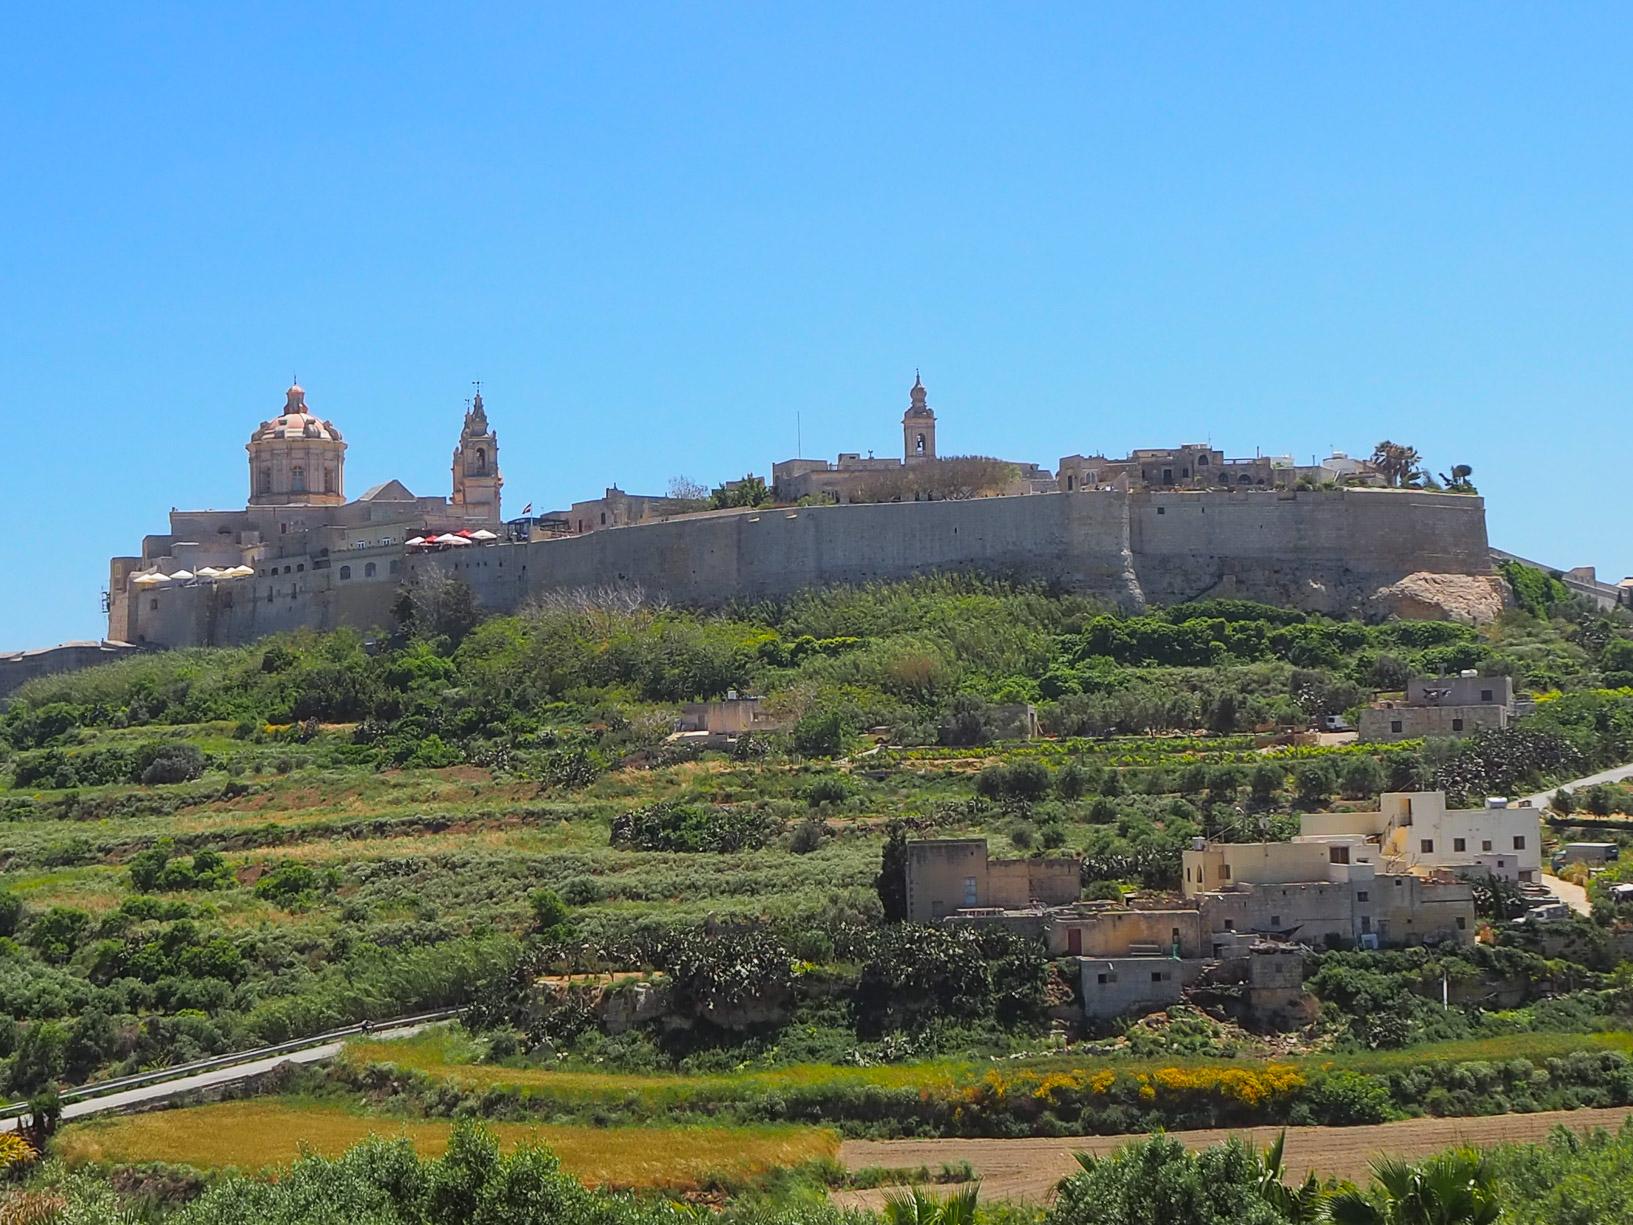 Malta, the fortified city of Mdina